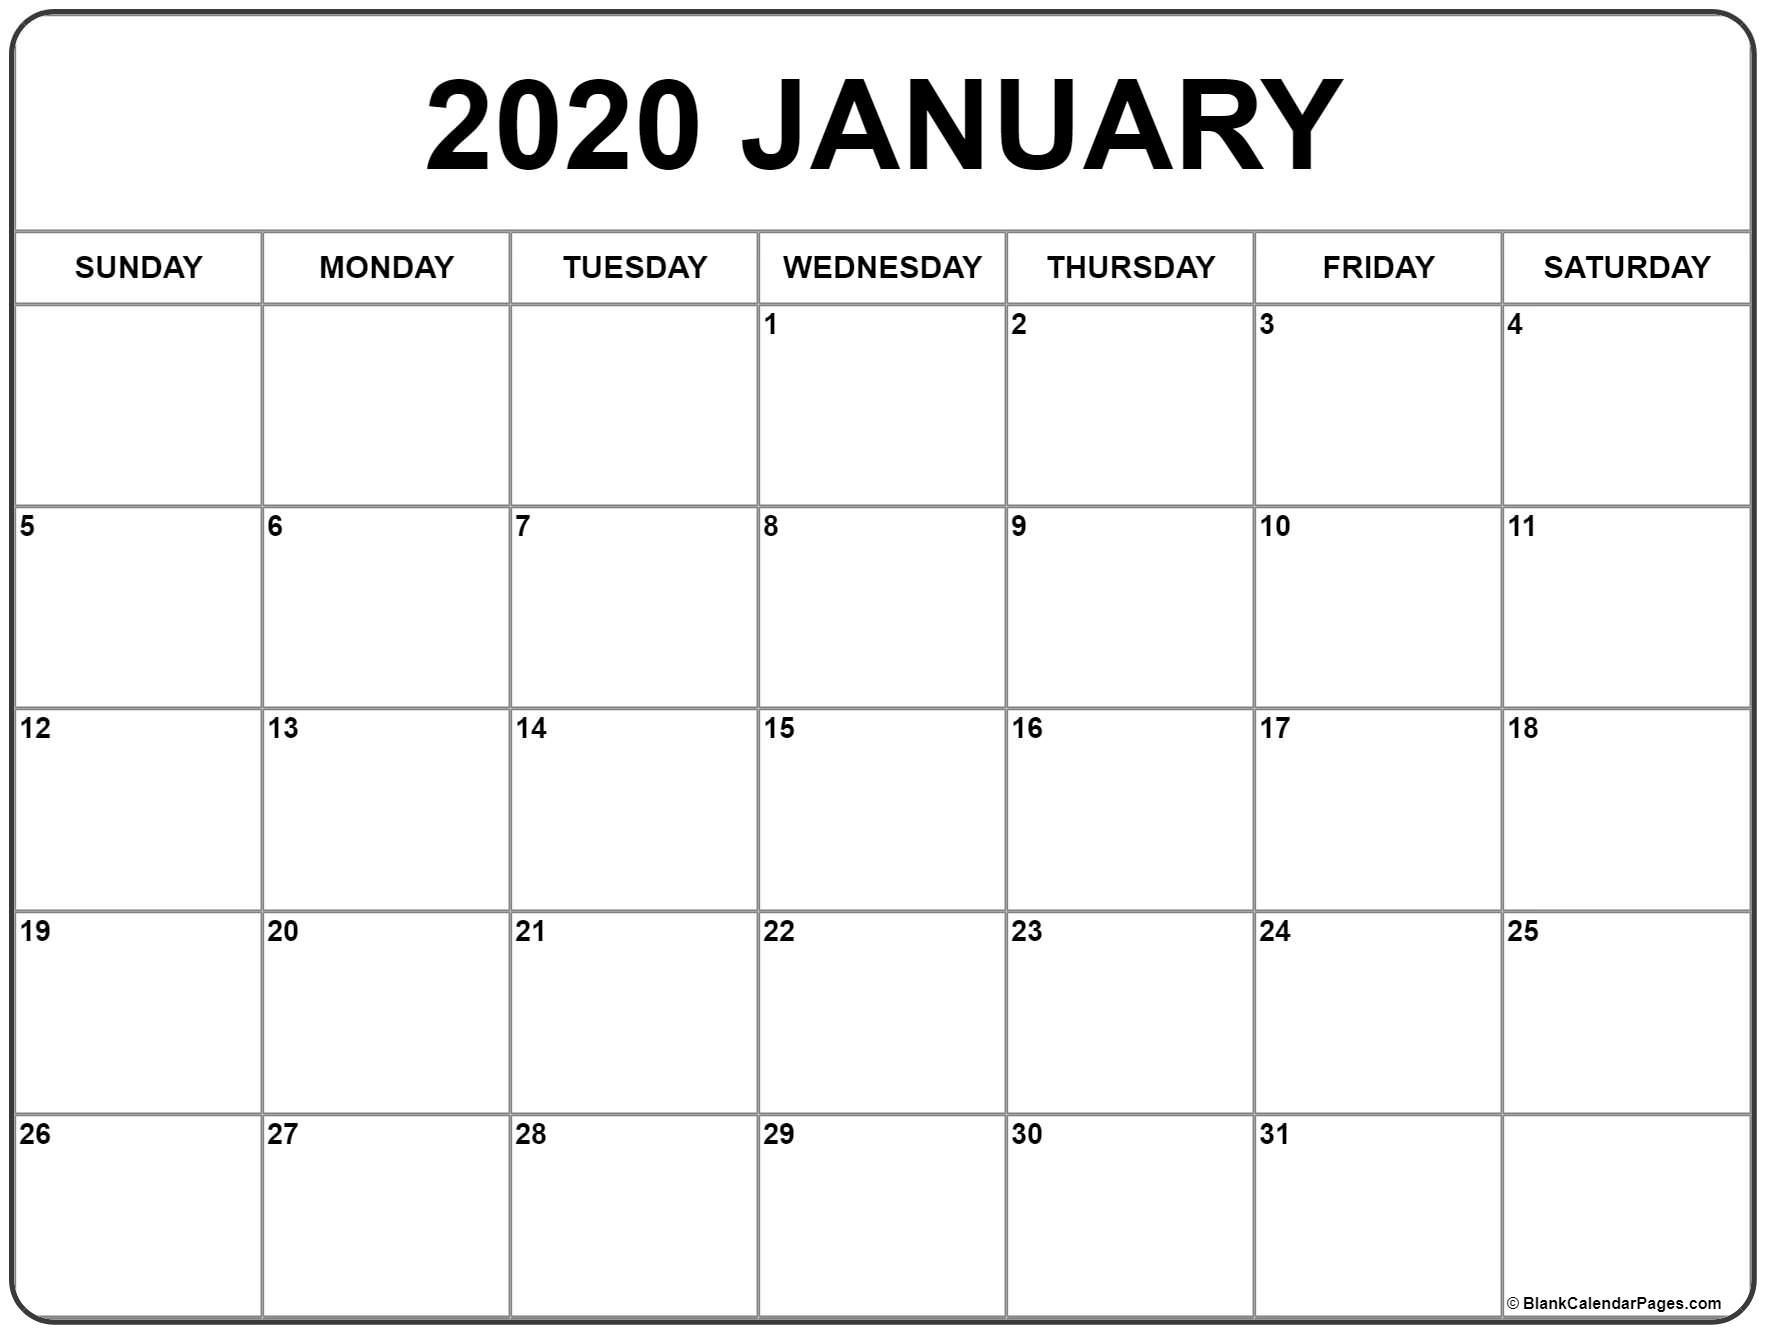 January 2020 Calendar | Free Printable Monthly Calendars  2020 Printable Calendar By Month